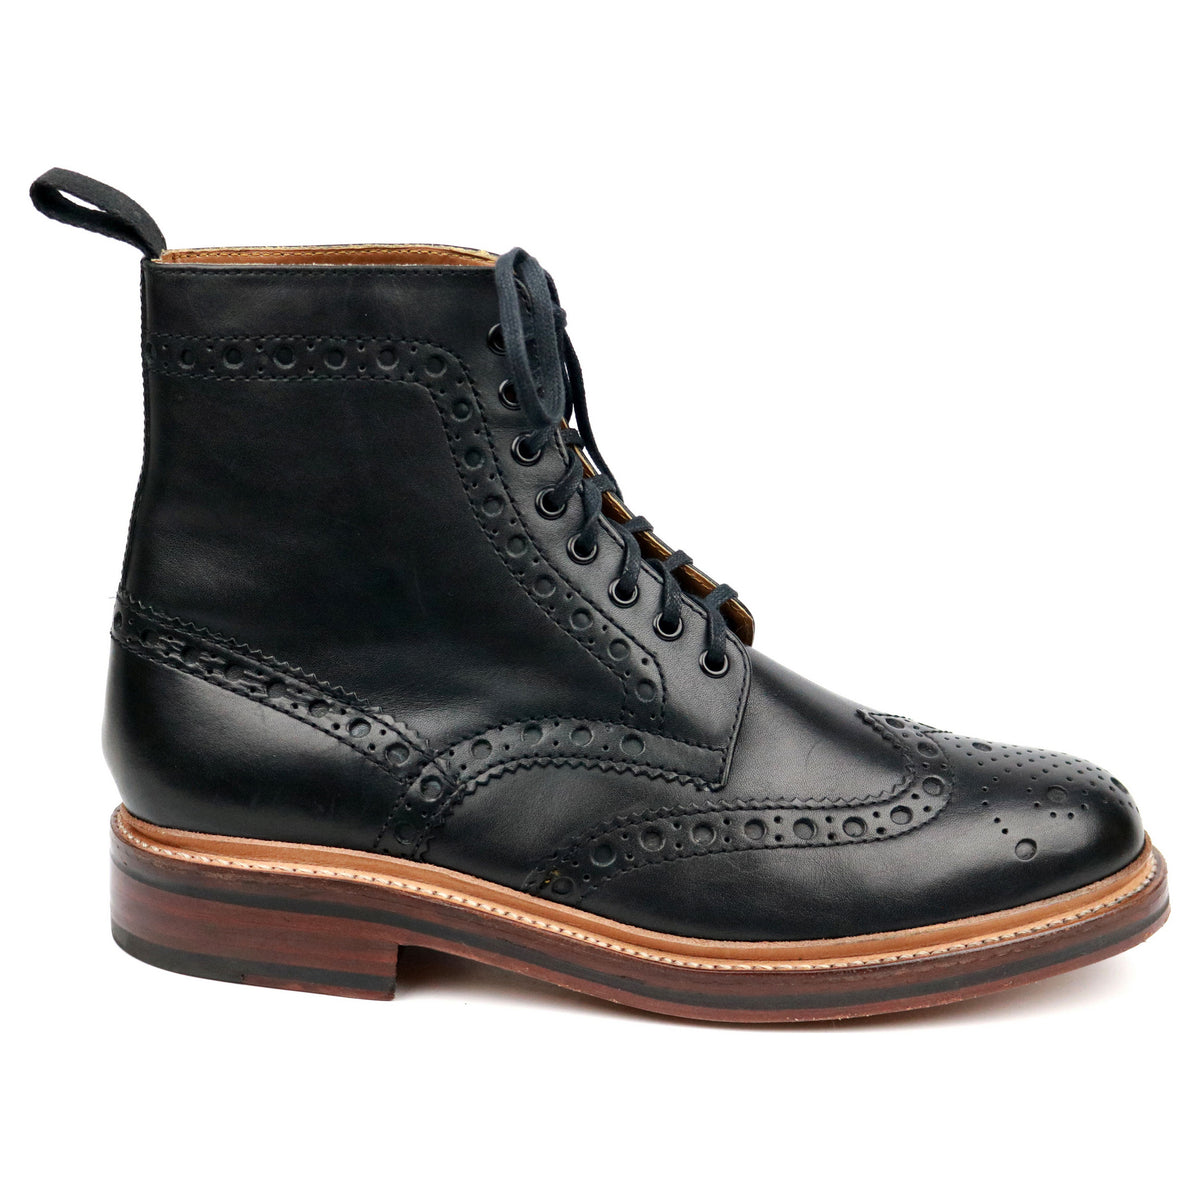 Grenson 'Fred' Black Leather Brogue Boots UK 8 G